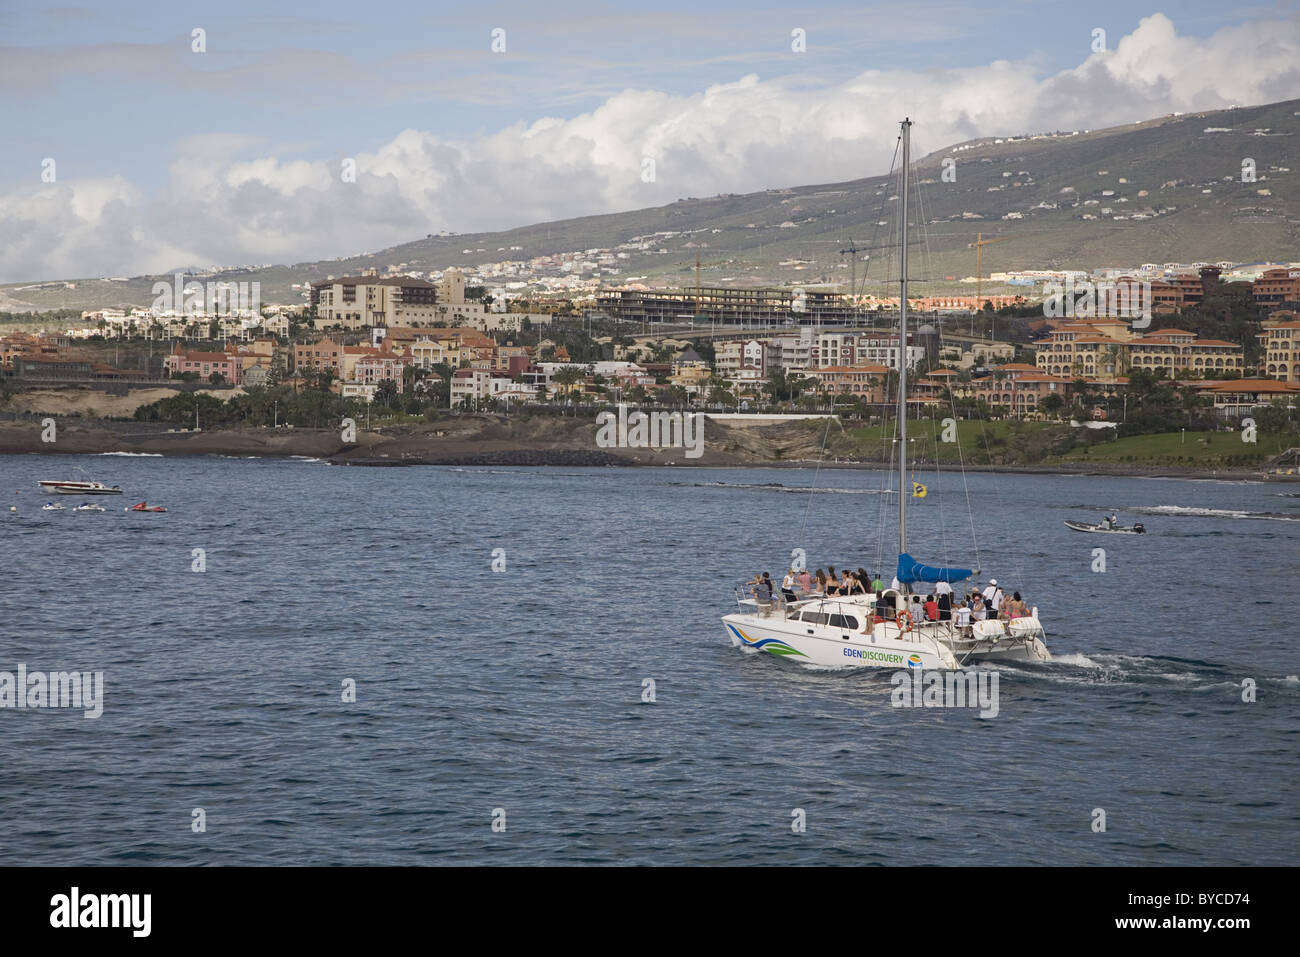 Catamaran sailing for a whale watching tour, Costa Adeje, Playa de las Americas, Tenerife, Spain - Stock Image